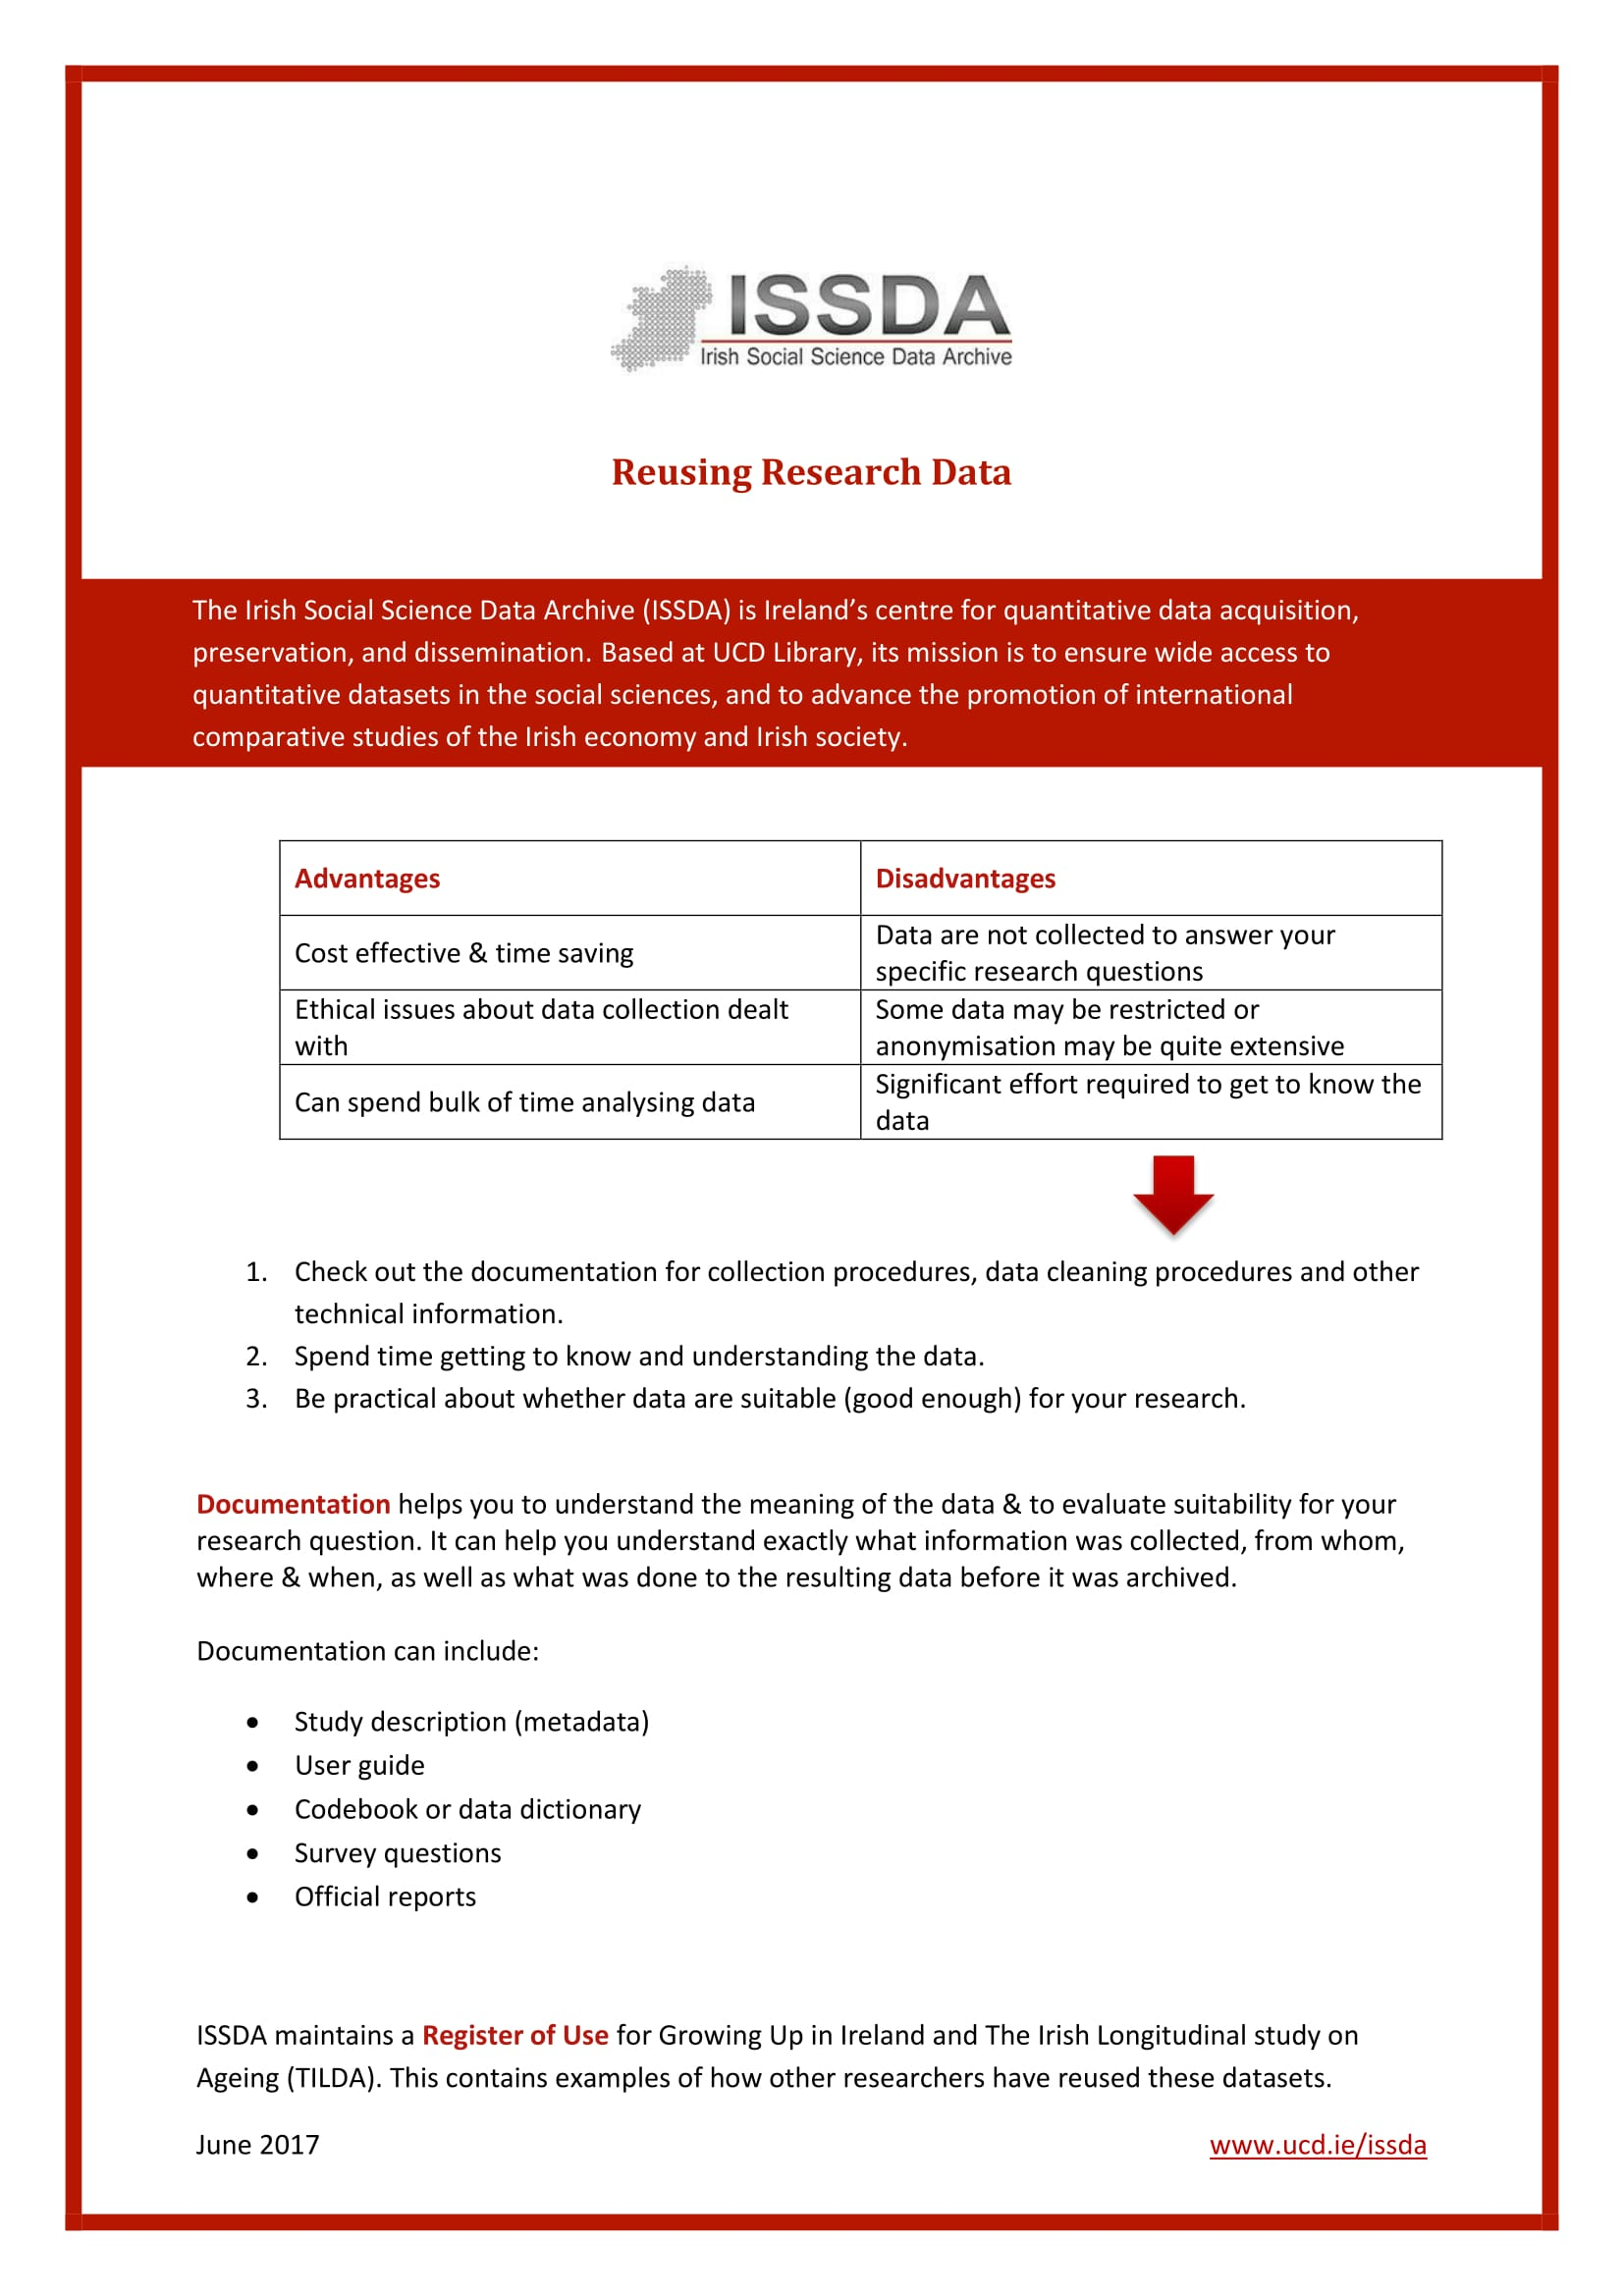 Image of Finding & Reusing Research Data flyer